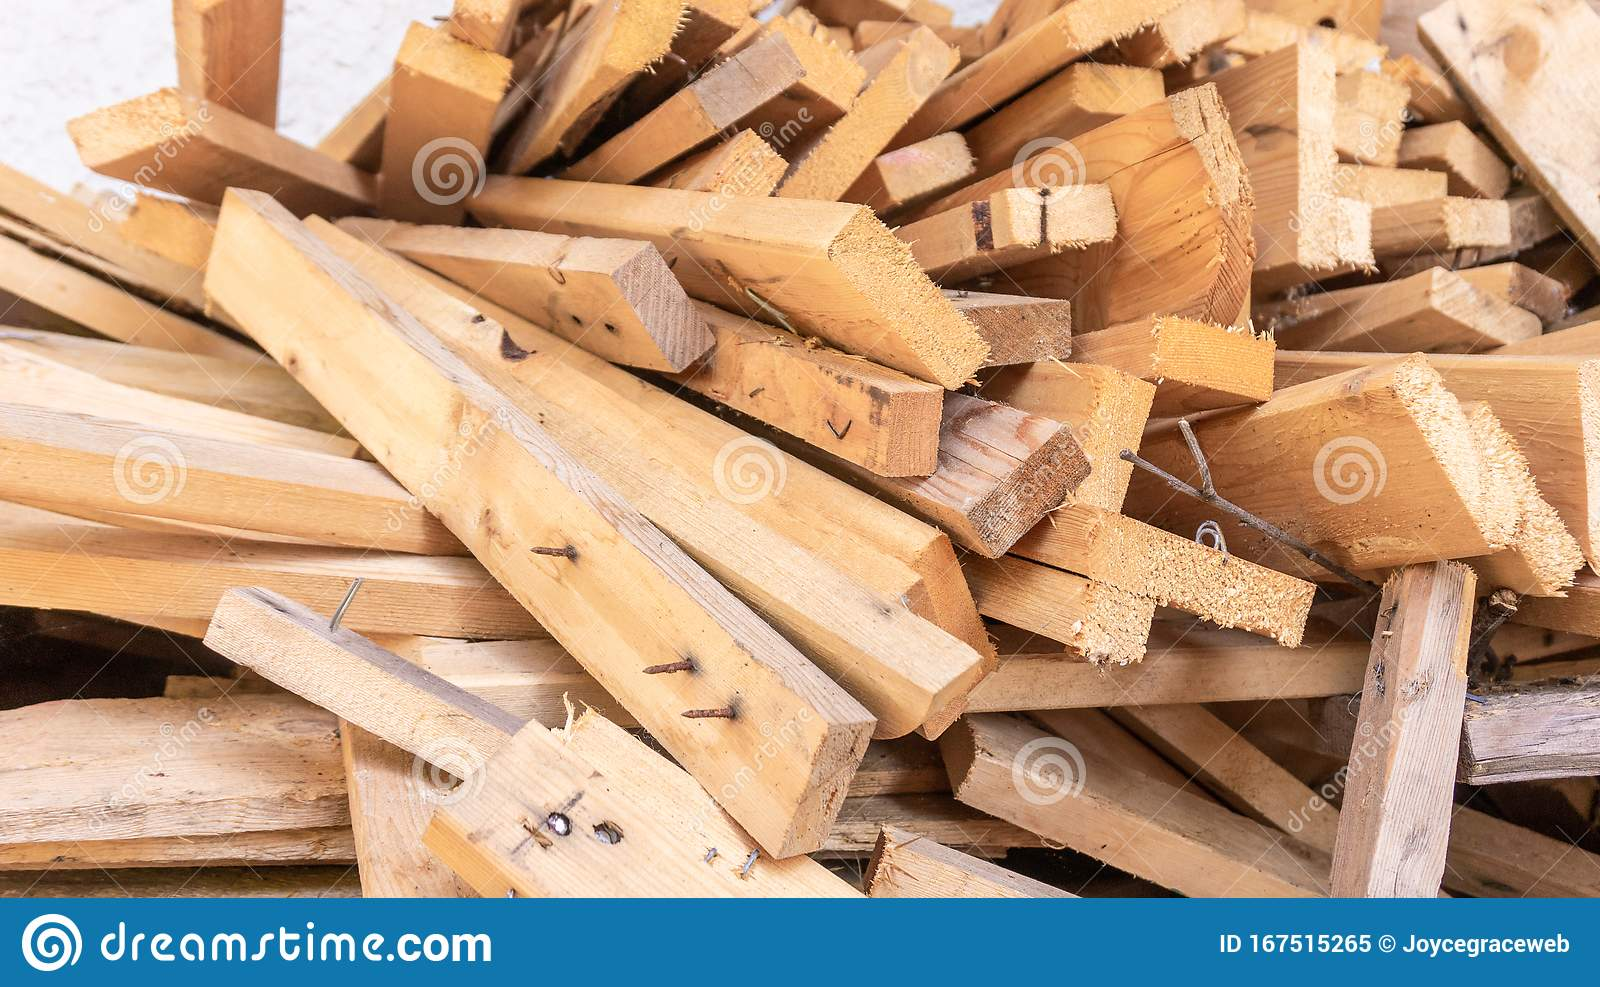 Pile Of Scrap Wood From Mattresses And Palettes For Recycled Up Cycled Diy Furniture Making Or Wood Carpentry Projects Wood Stock Image Image Of Industry Environmental 167515265